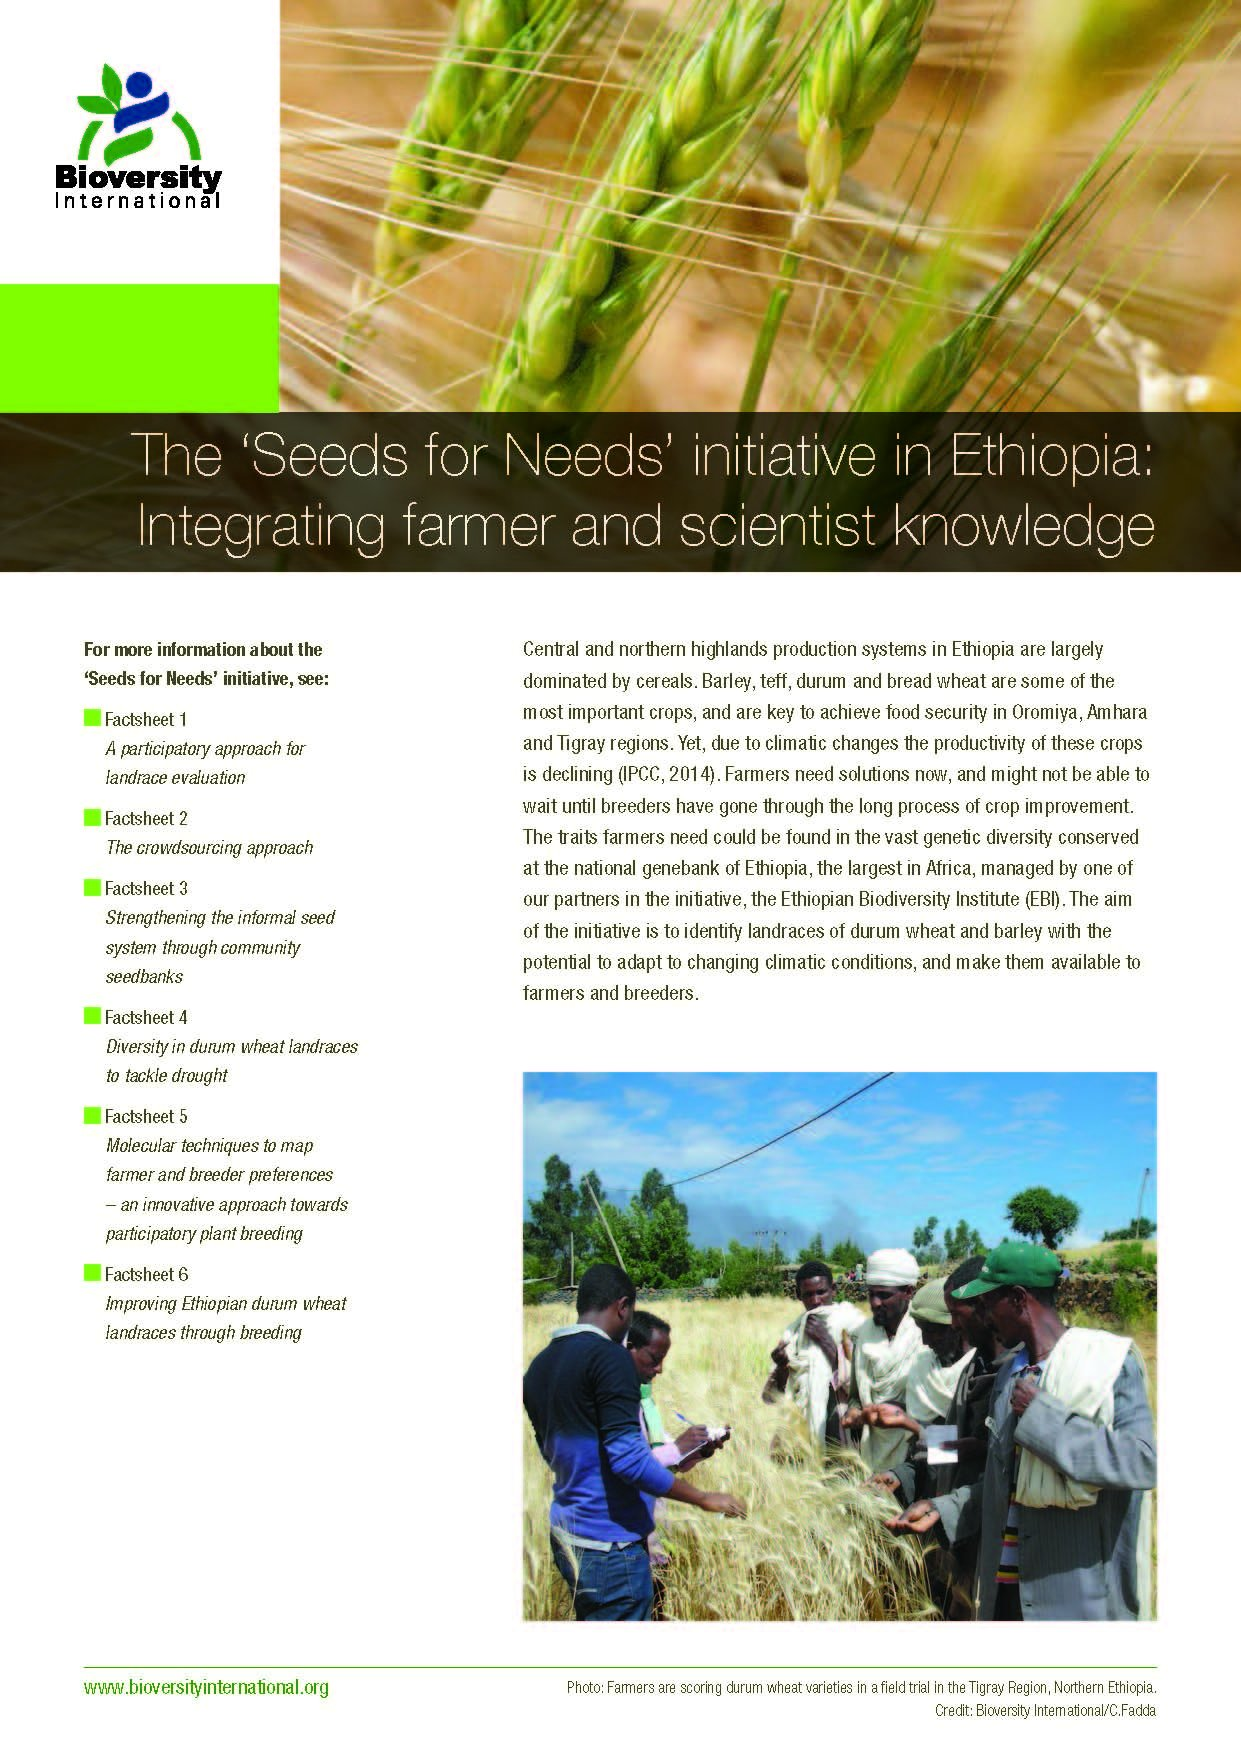 The Seeds for Needs Initiative in Ethiopia: integrating farmer and